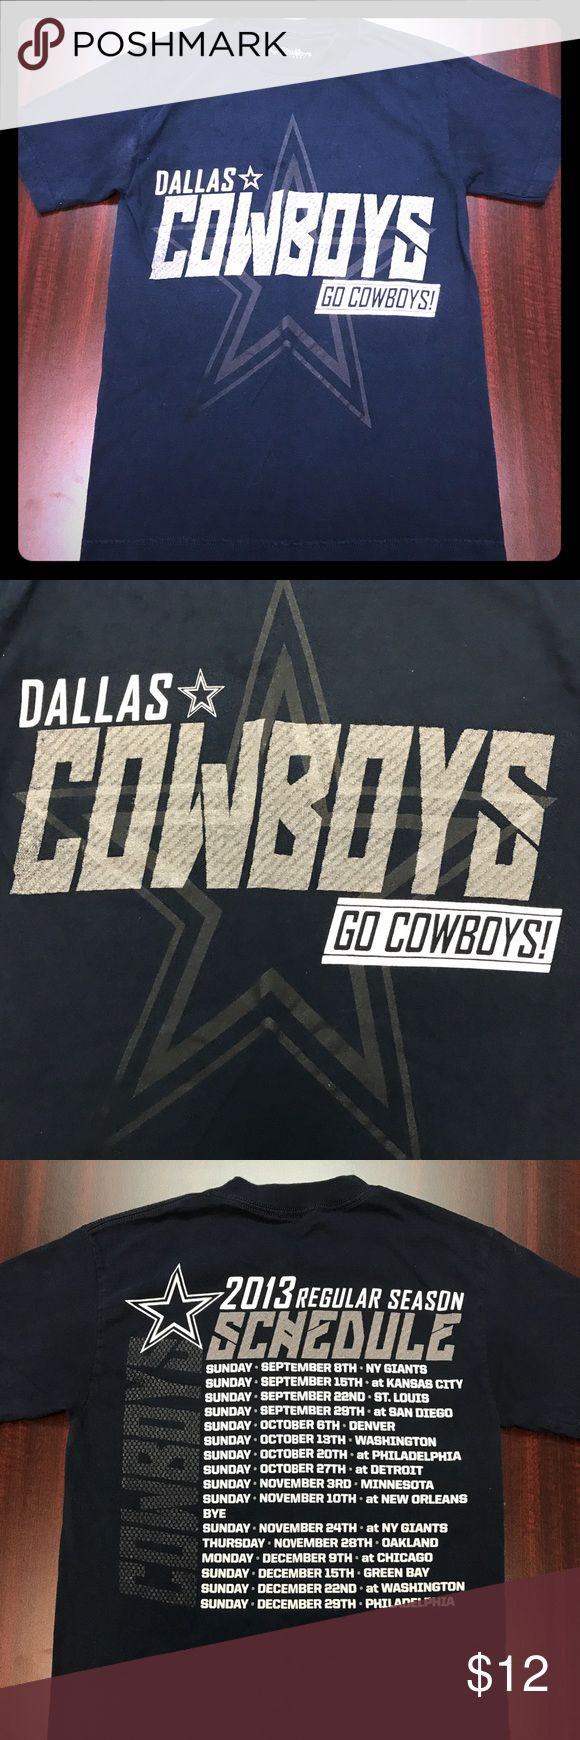 Nfl dallas cowboys football men s t shirt for sale is a size small nfl